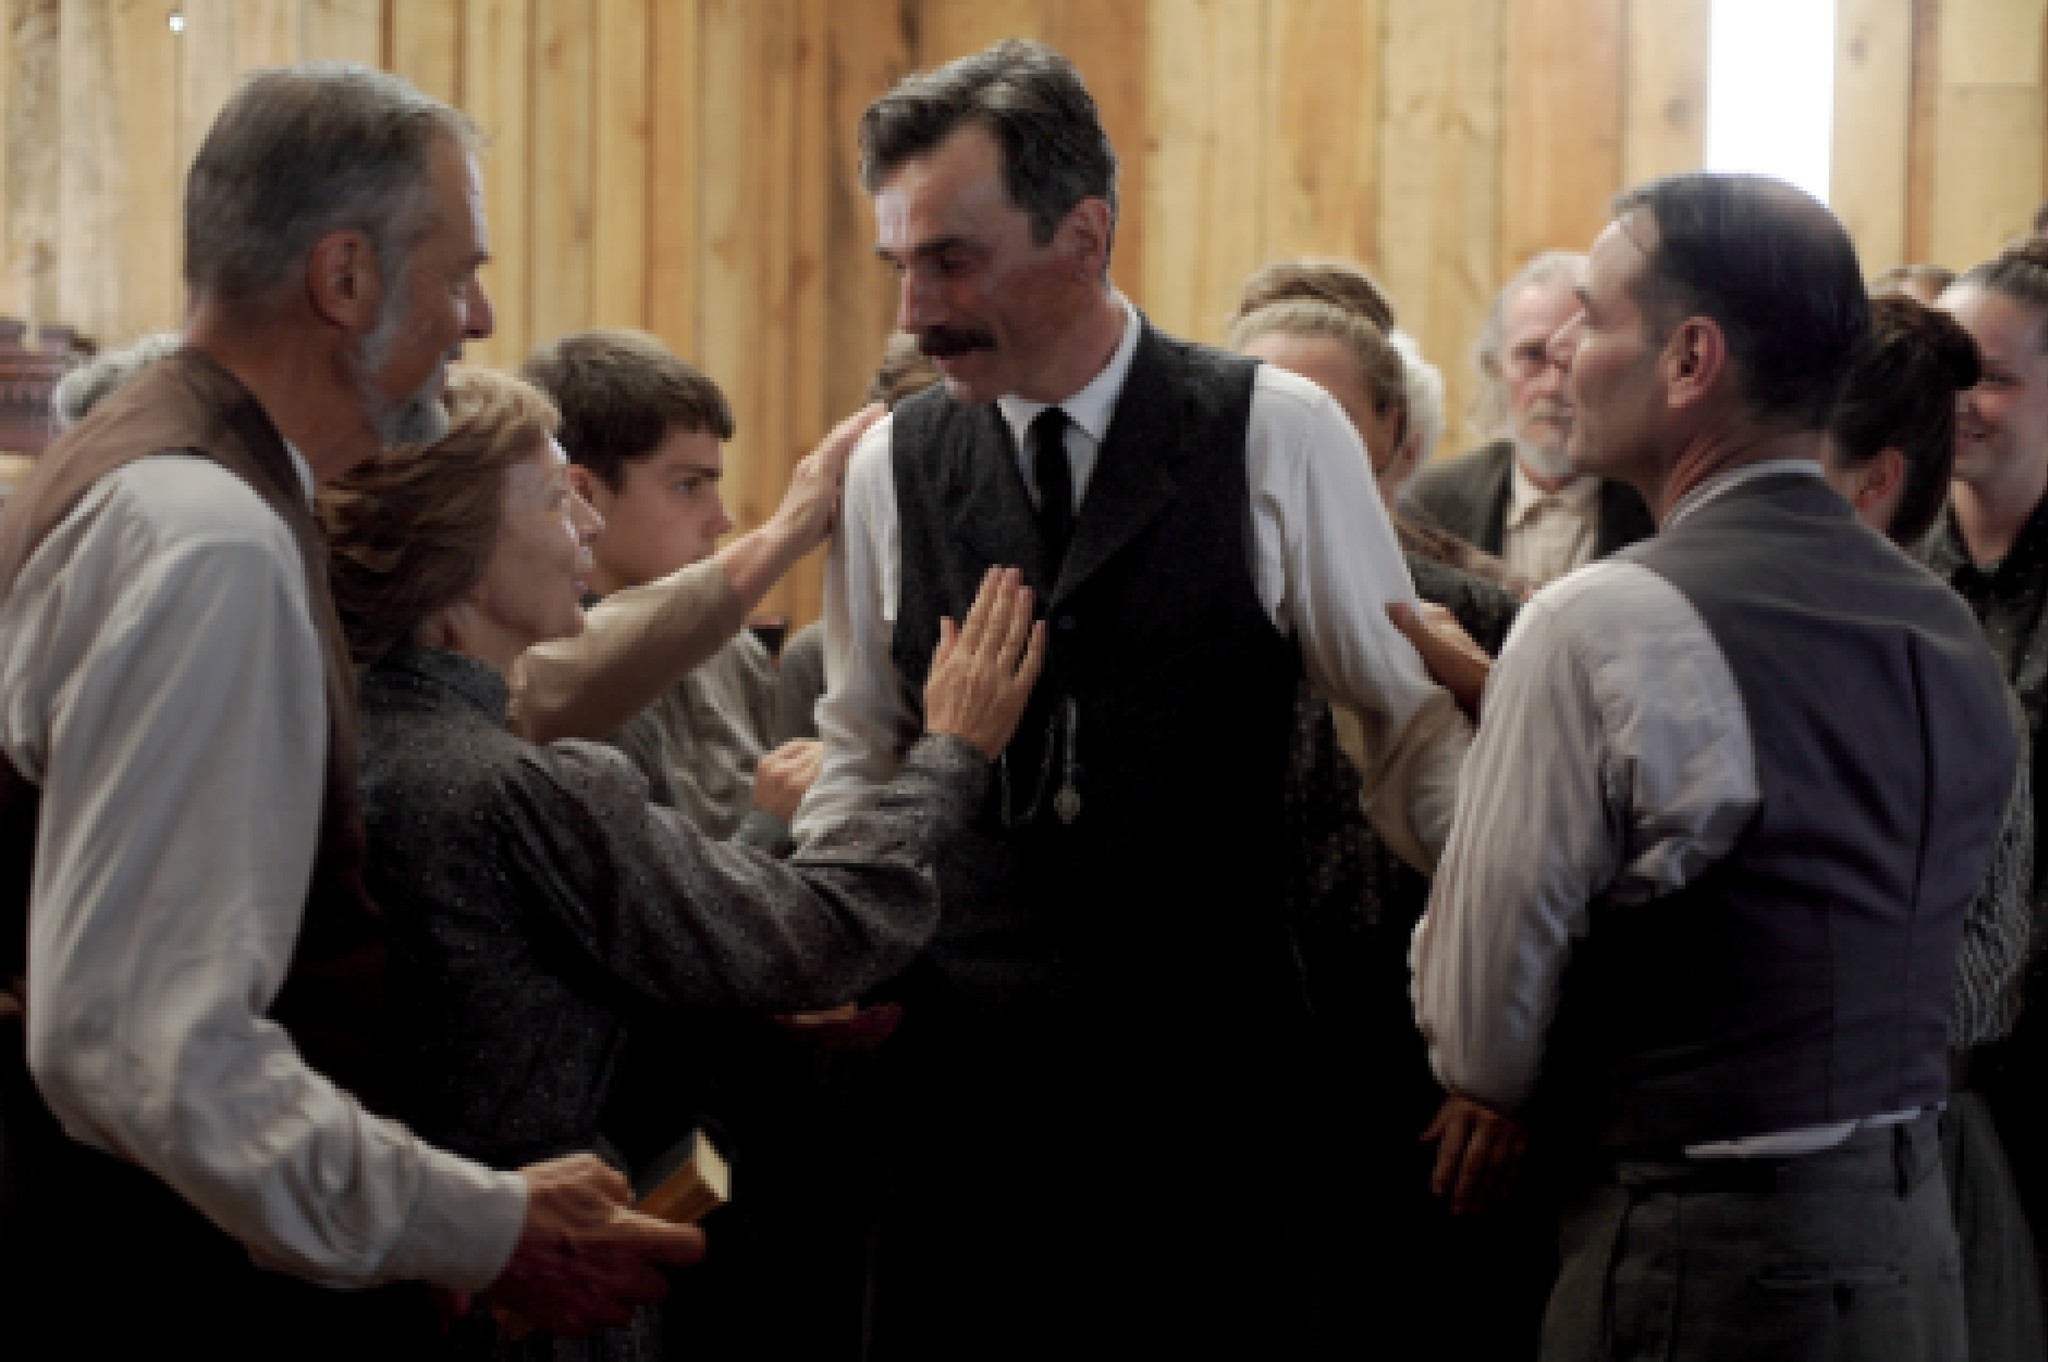 Daniel Day-Lewis in There Will Be Blood (2007)